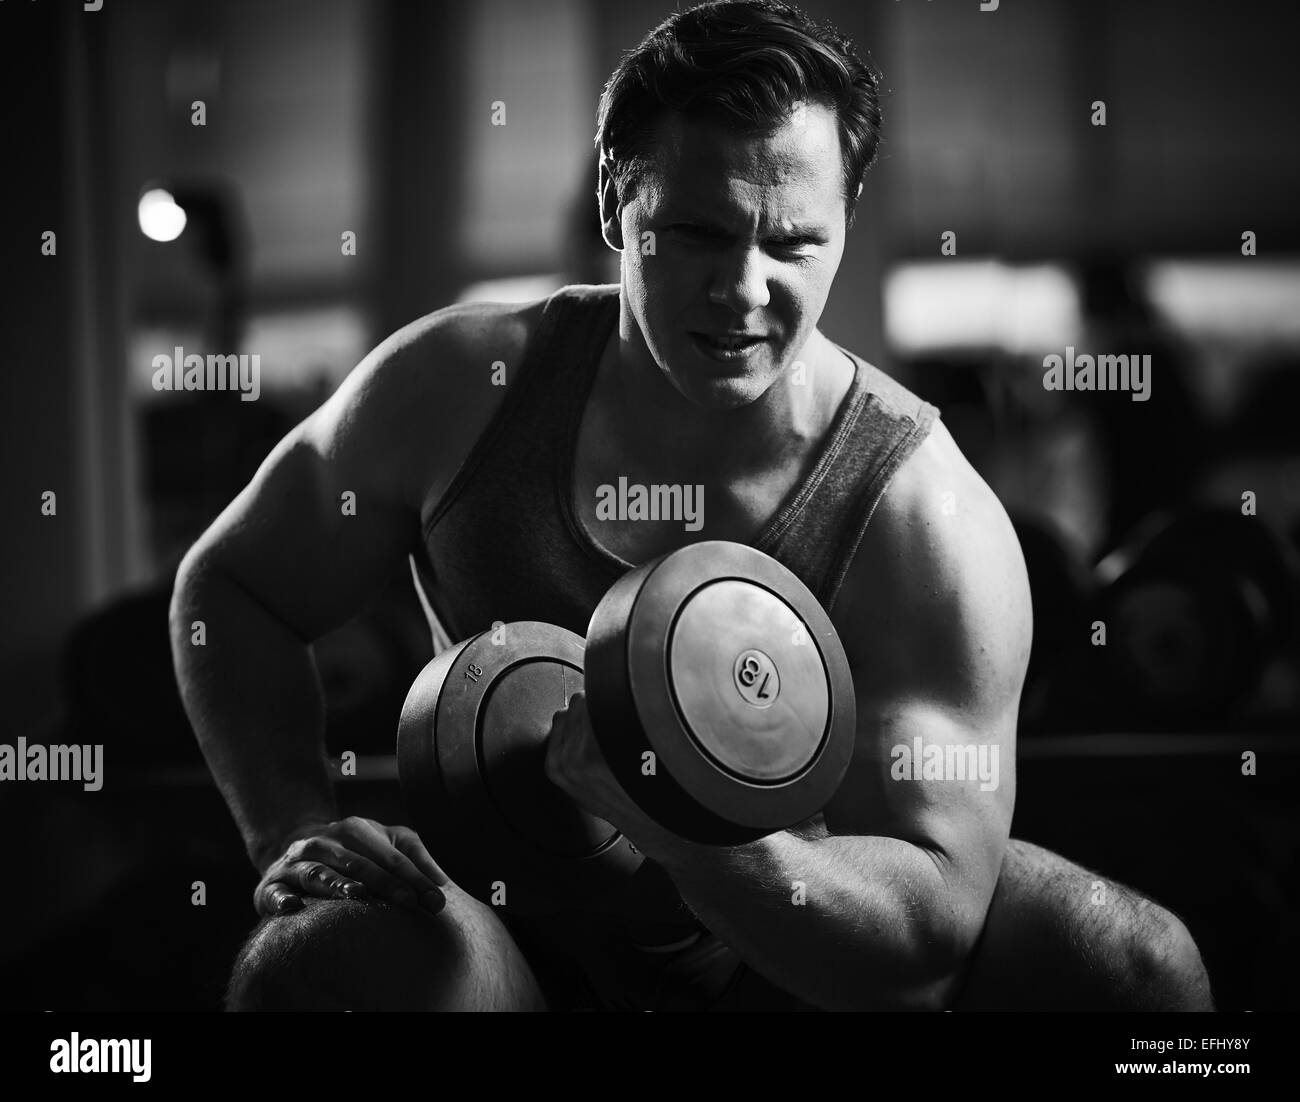 Young man doing exercise with barbell in gym - Stock Image